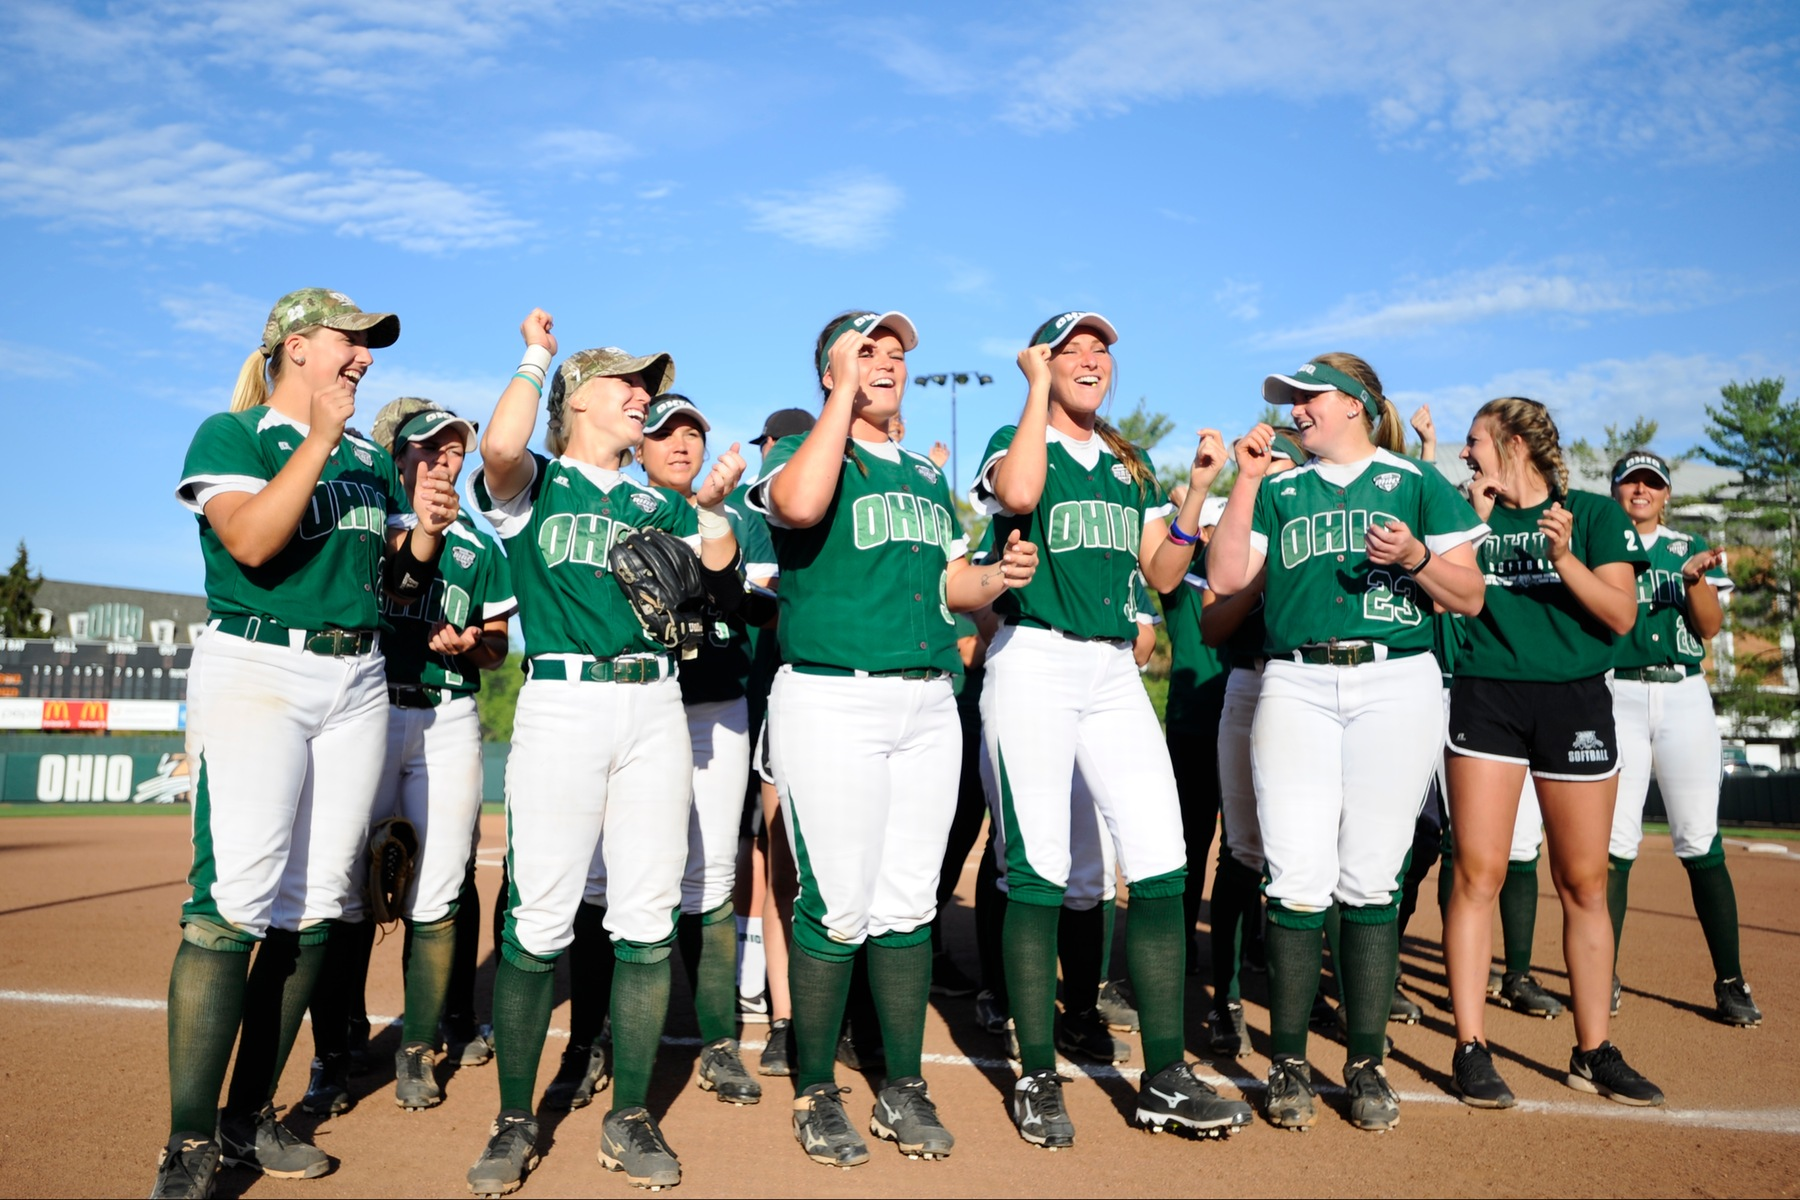 Ohio Softball Storms Back, Downs James Madison in Nine Innings, 9-7